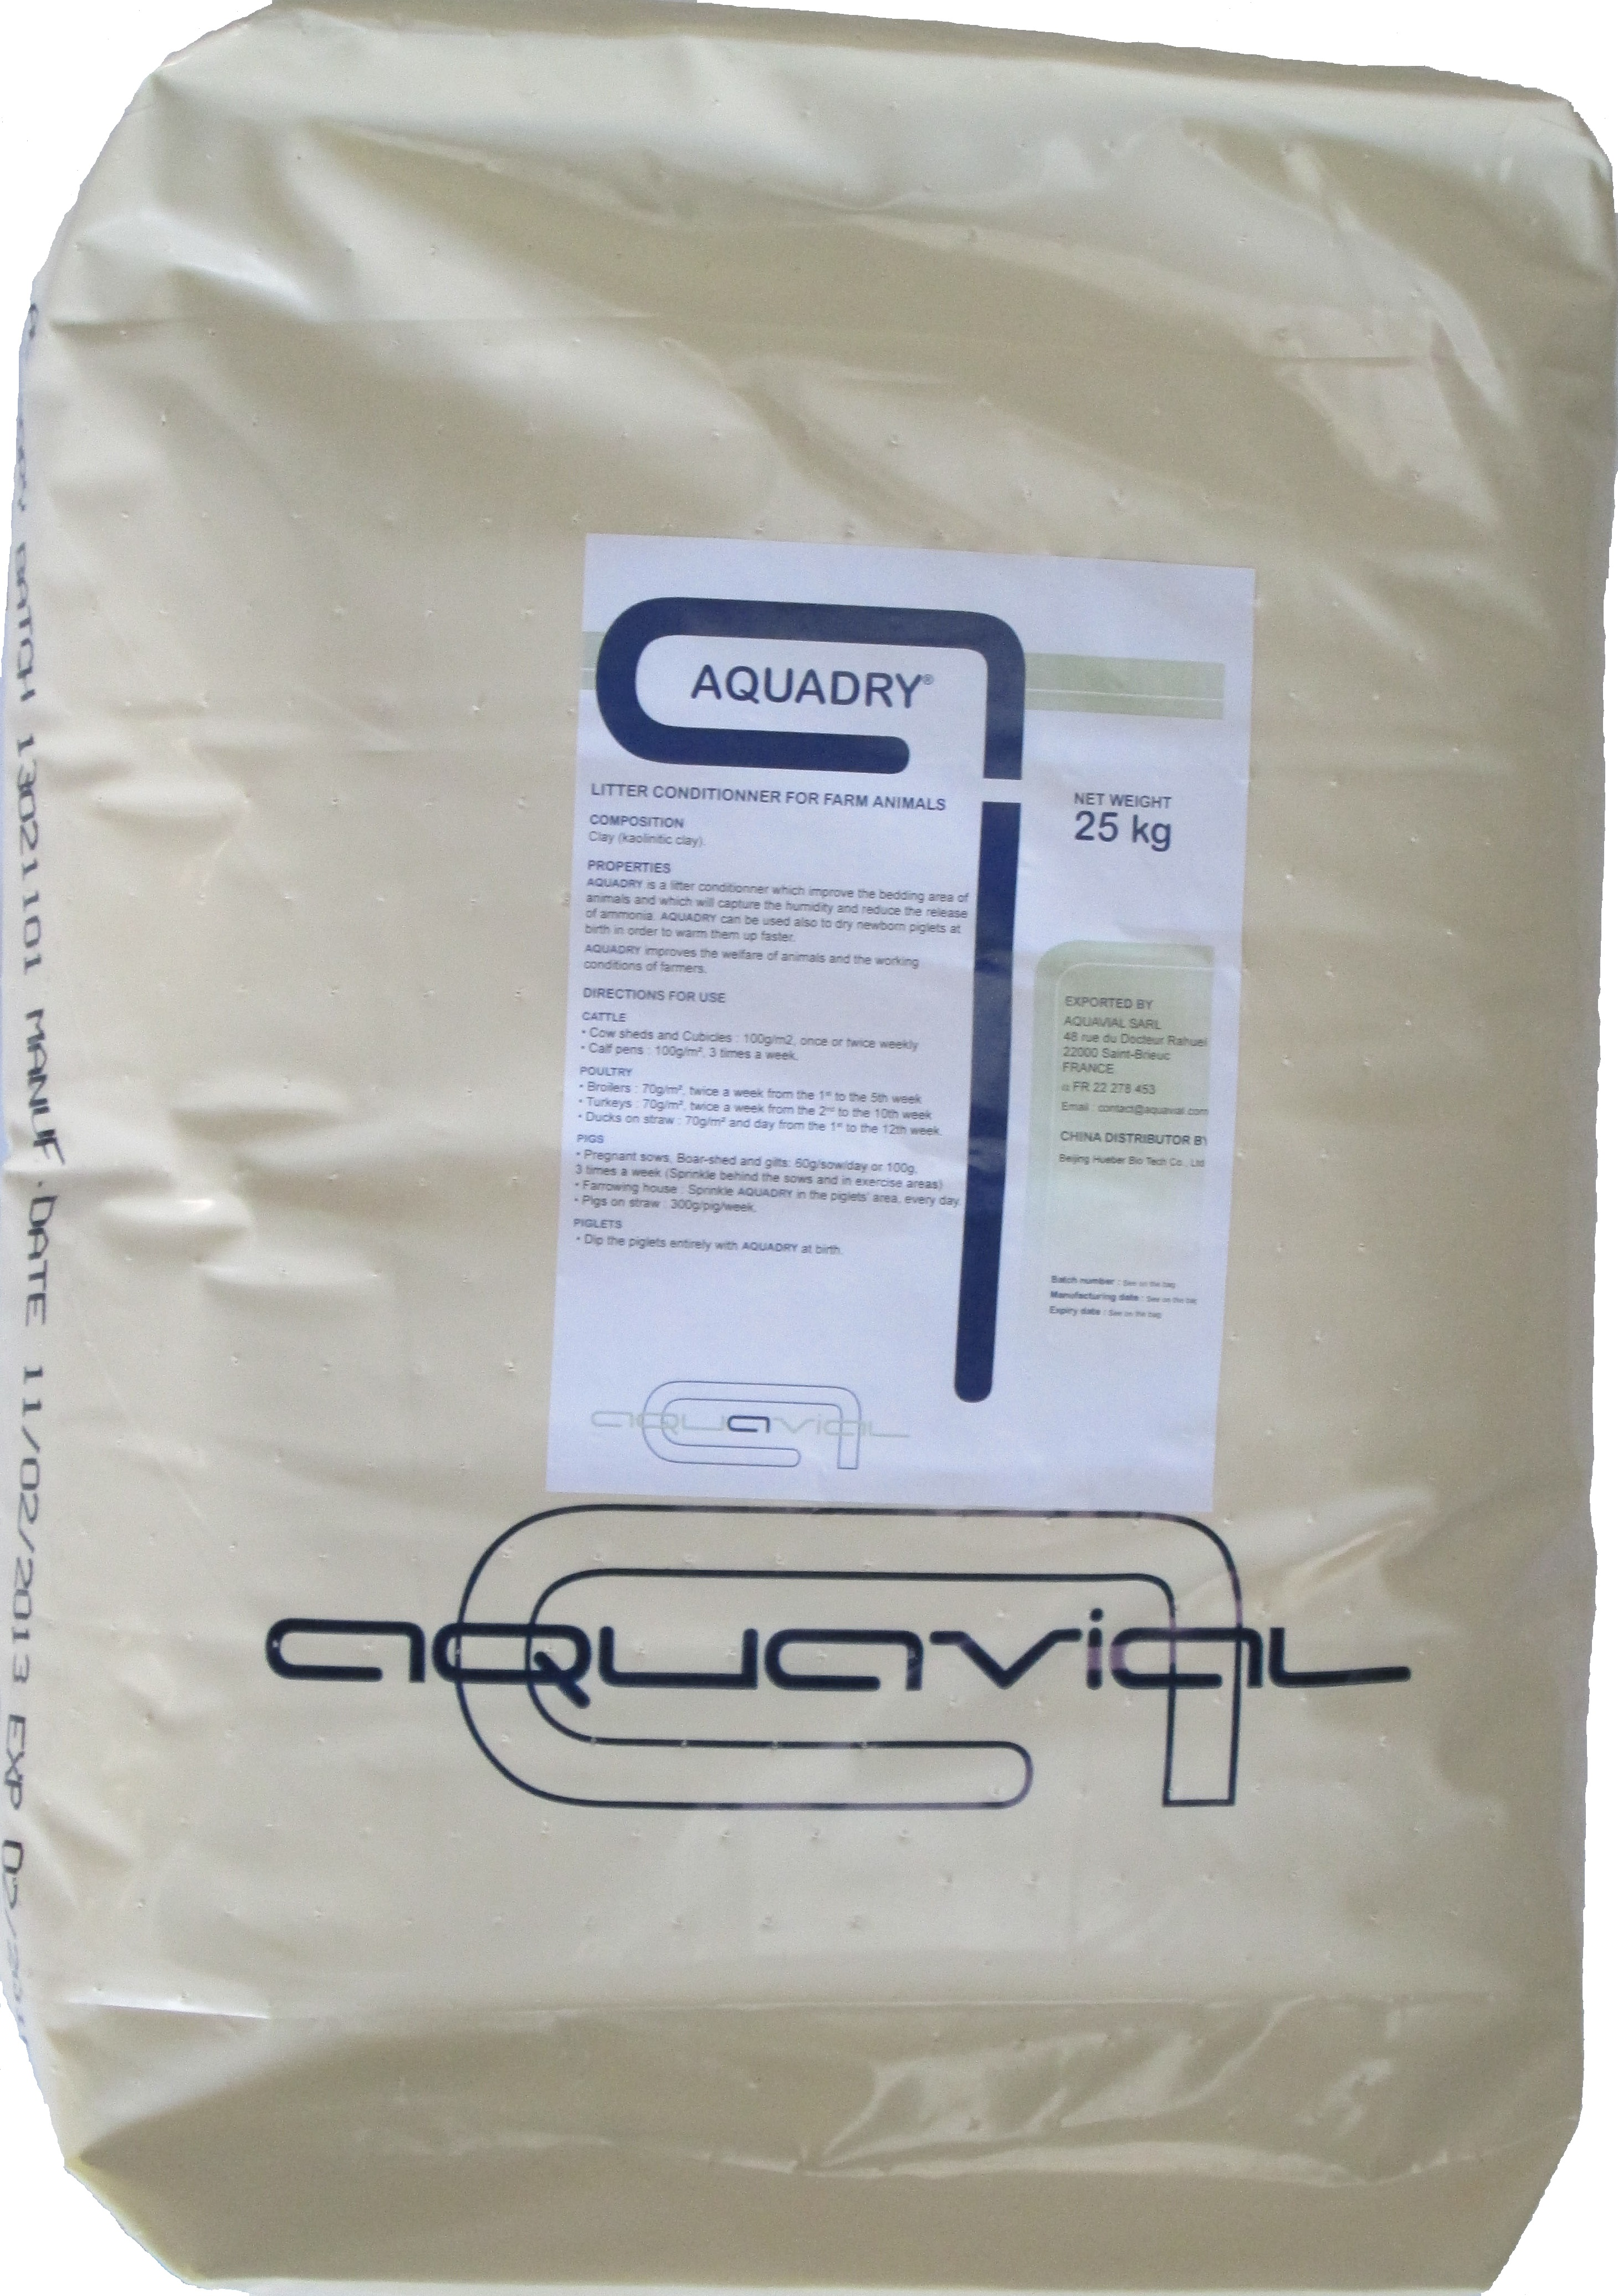 Aquadry - Aquavial litter conditioner for poultry